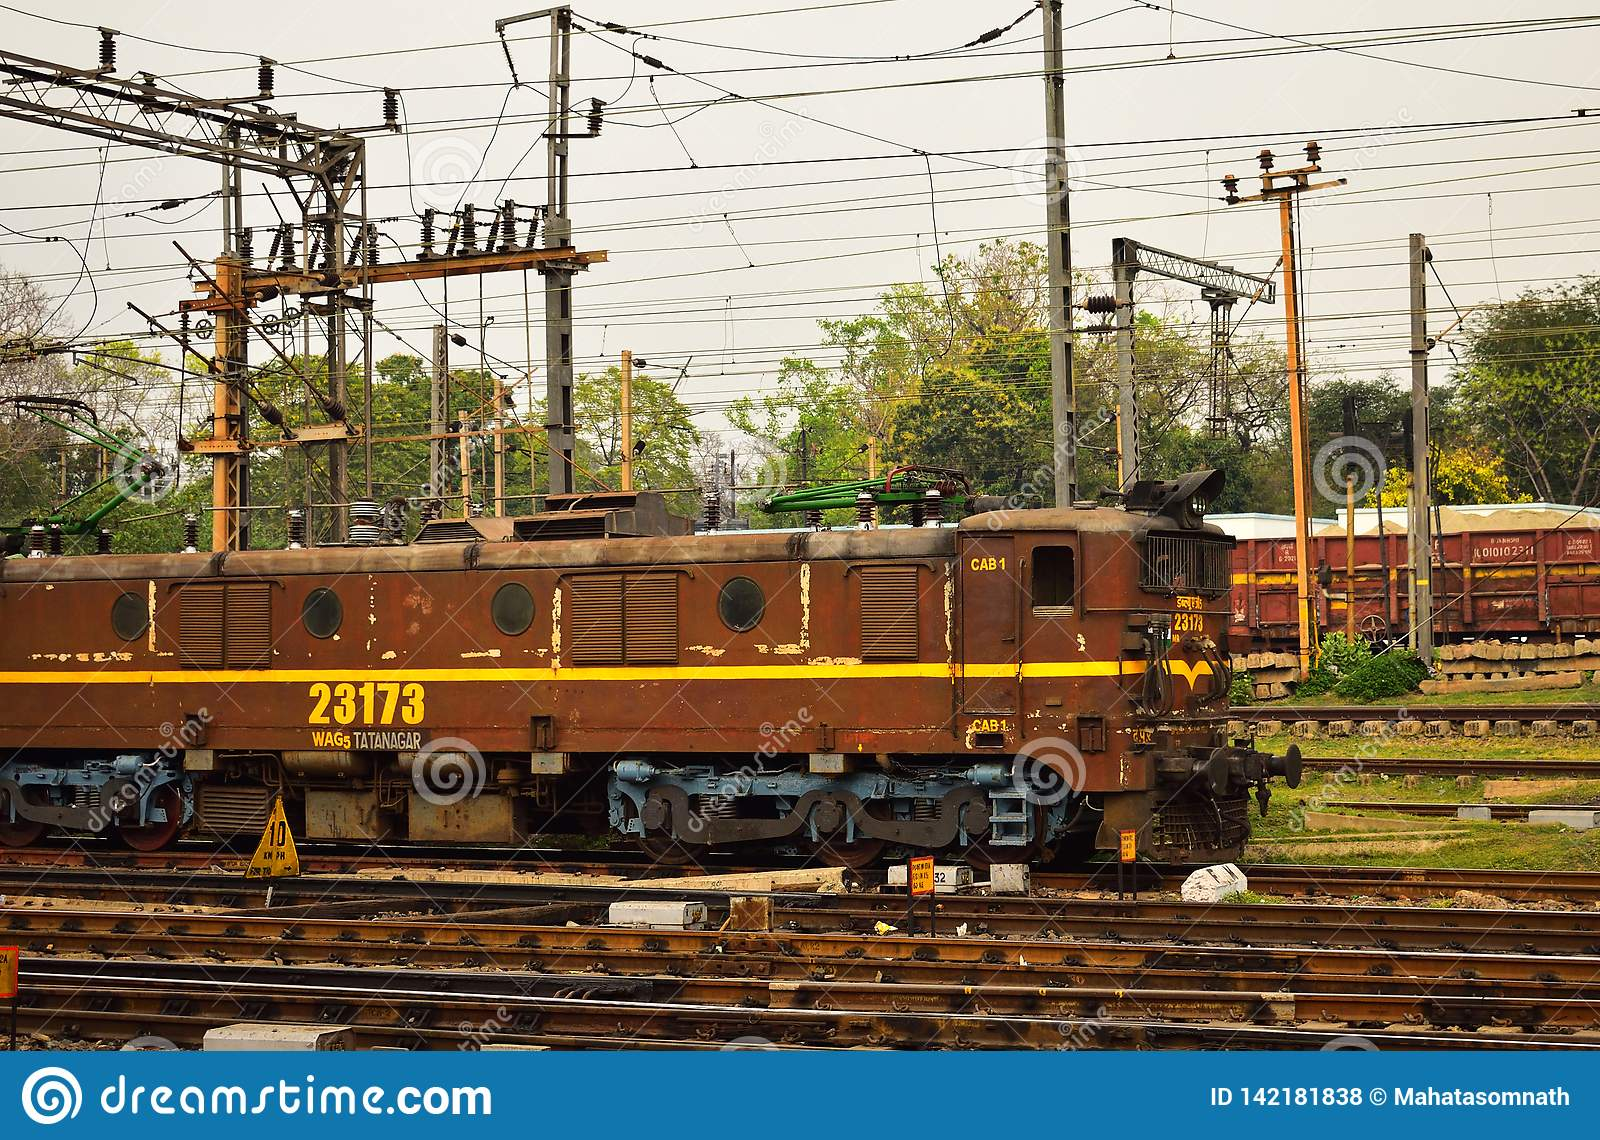 Rail engine of Indian Railway on railtracks